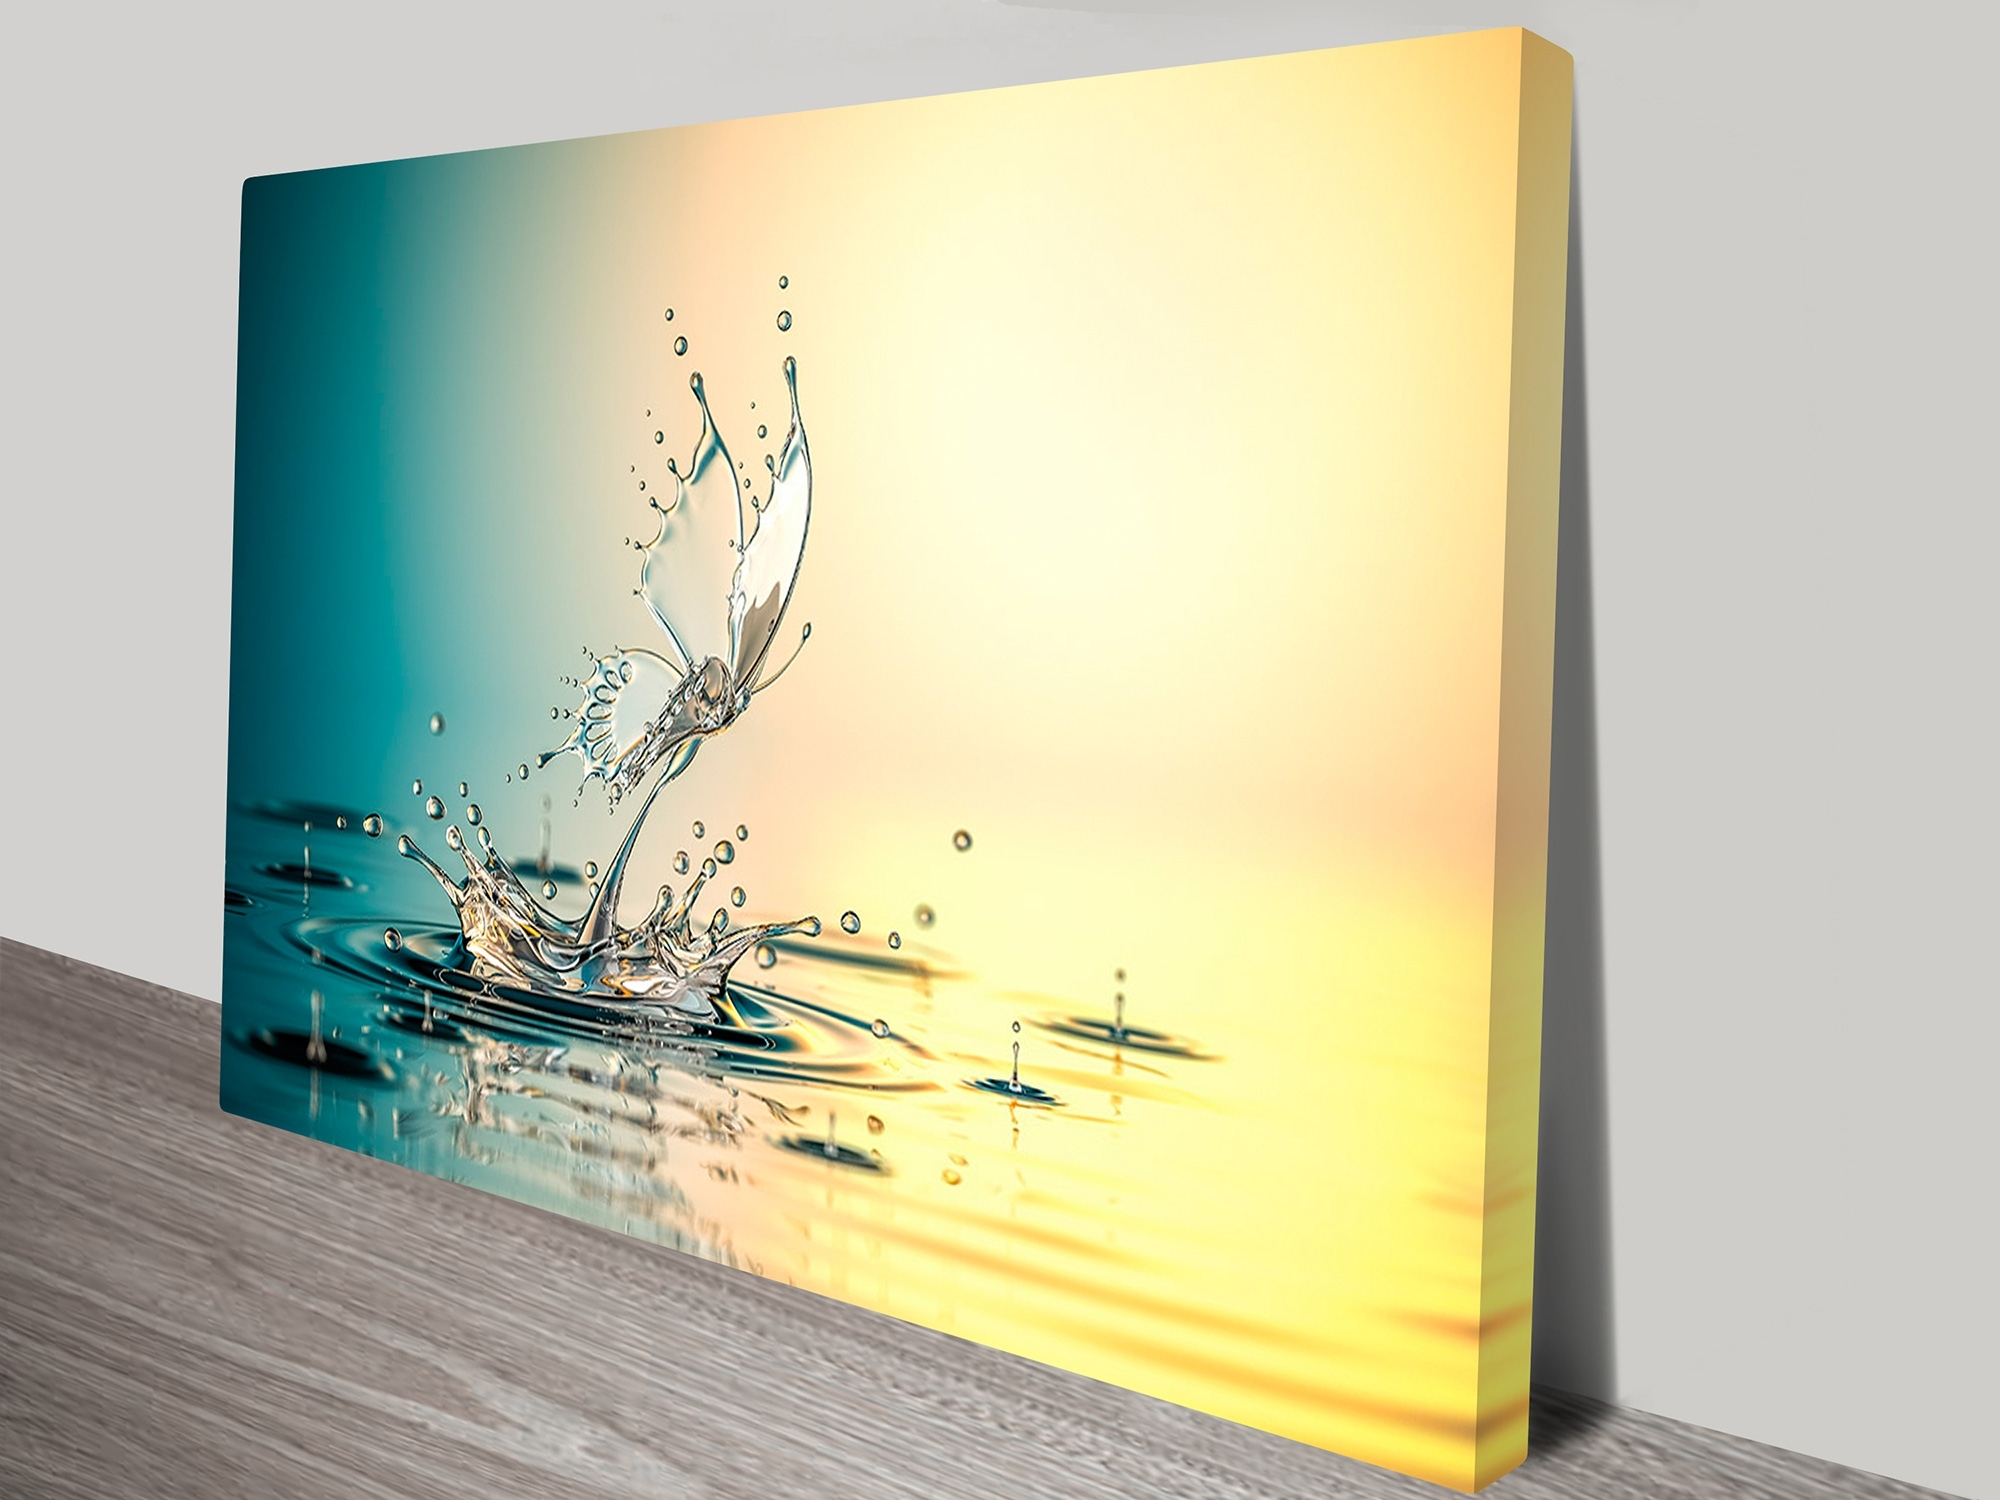 Water Butterfly Abstract Canvas Wall Art Geelong With Regard To Most Recent Canvas Wall Art In Melbourne (View 3 of 15)